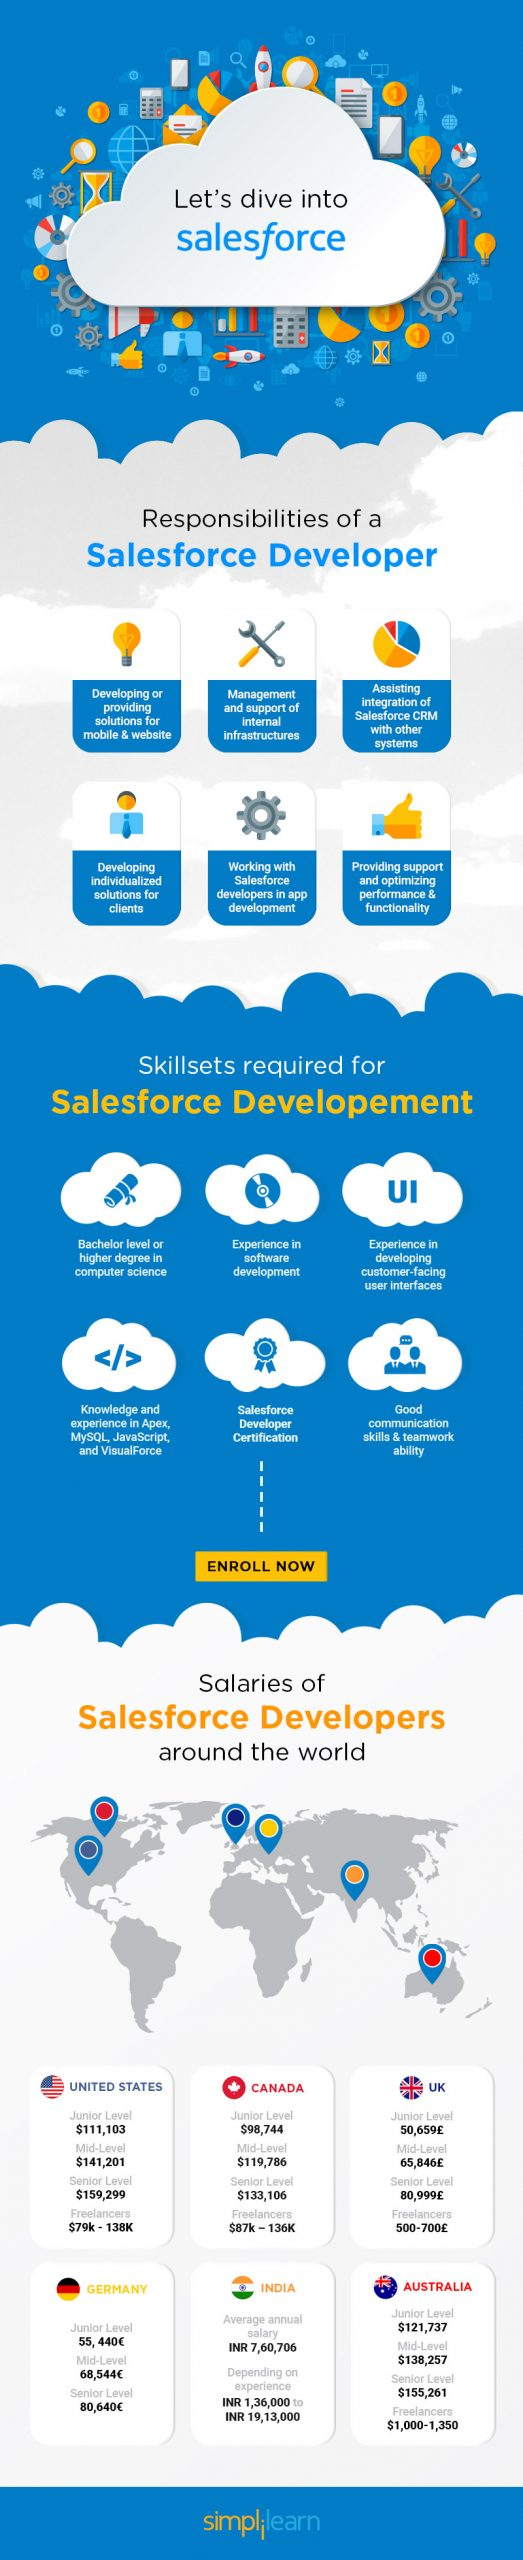 The Demand for Salesforce: Salesforce Developer Salaries and Opportunities